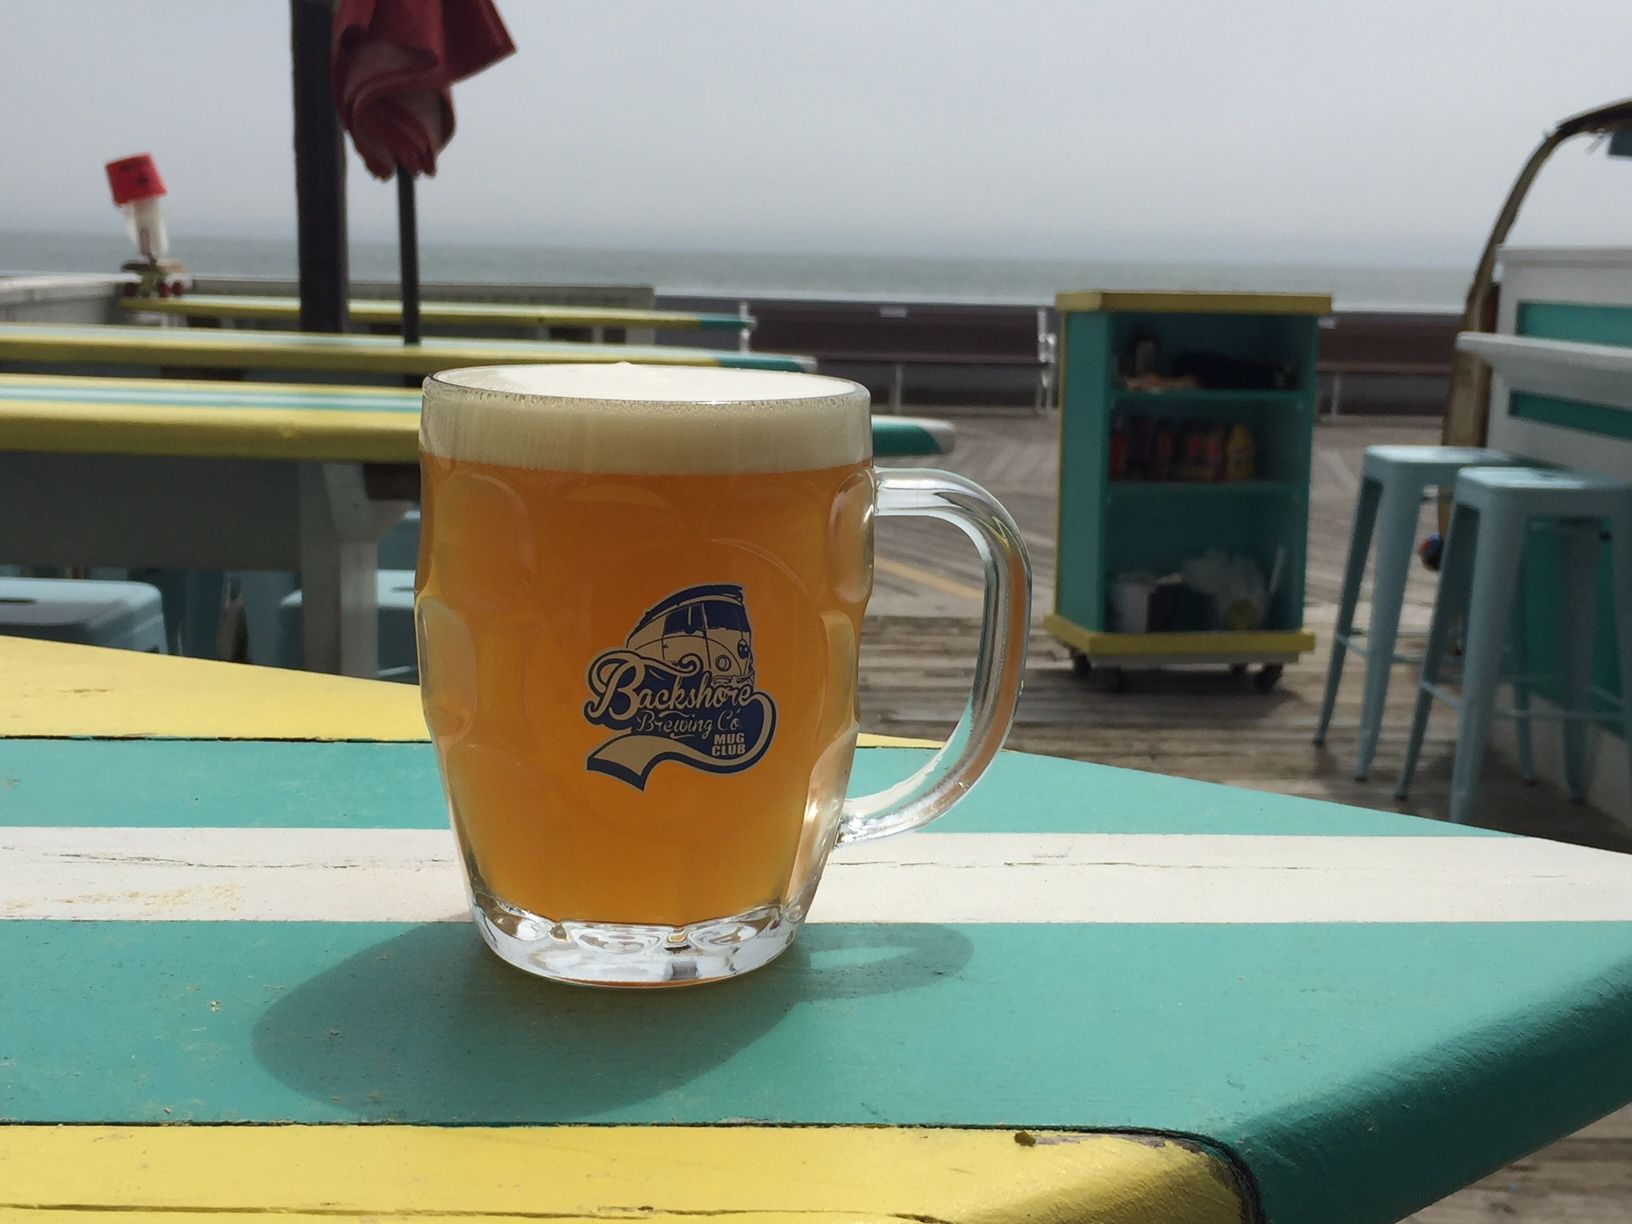 Backshore Brewing in Ocean City, Maryland, is the only brewery on Delmarva with an ocean-front bar. (WTOP/John Domen)